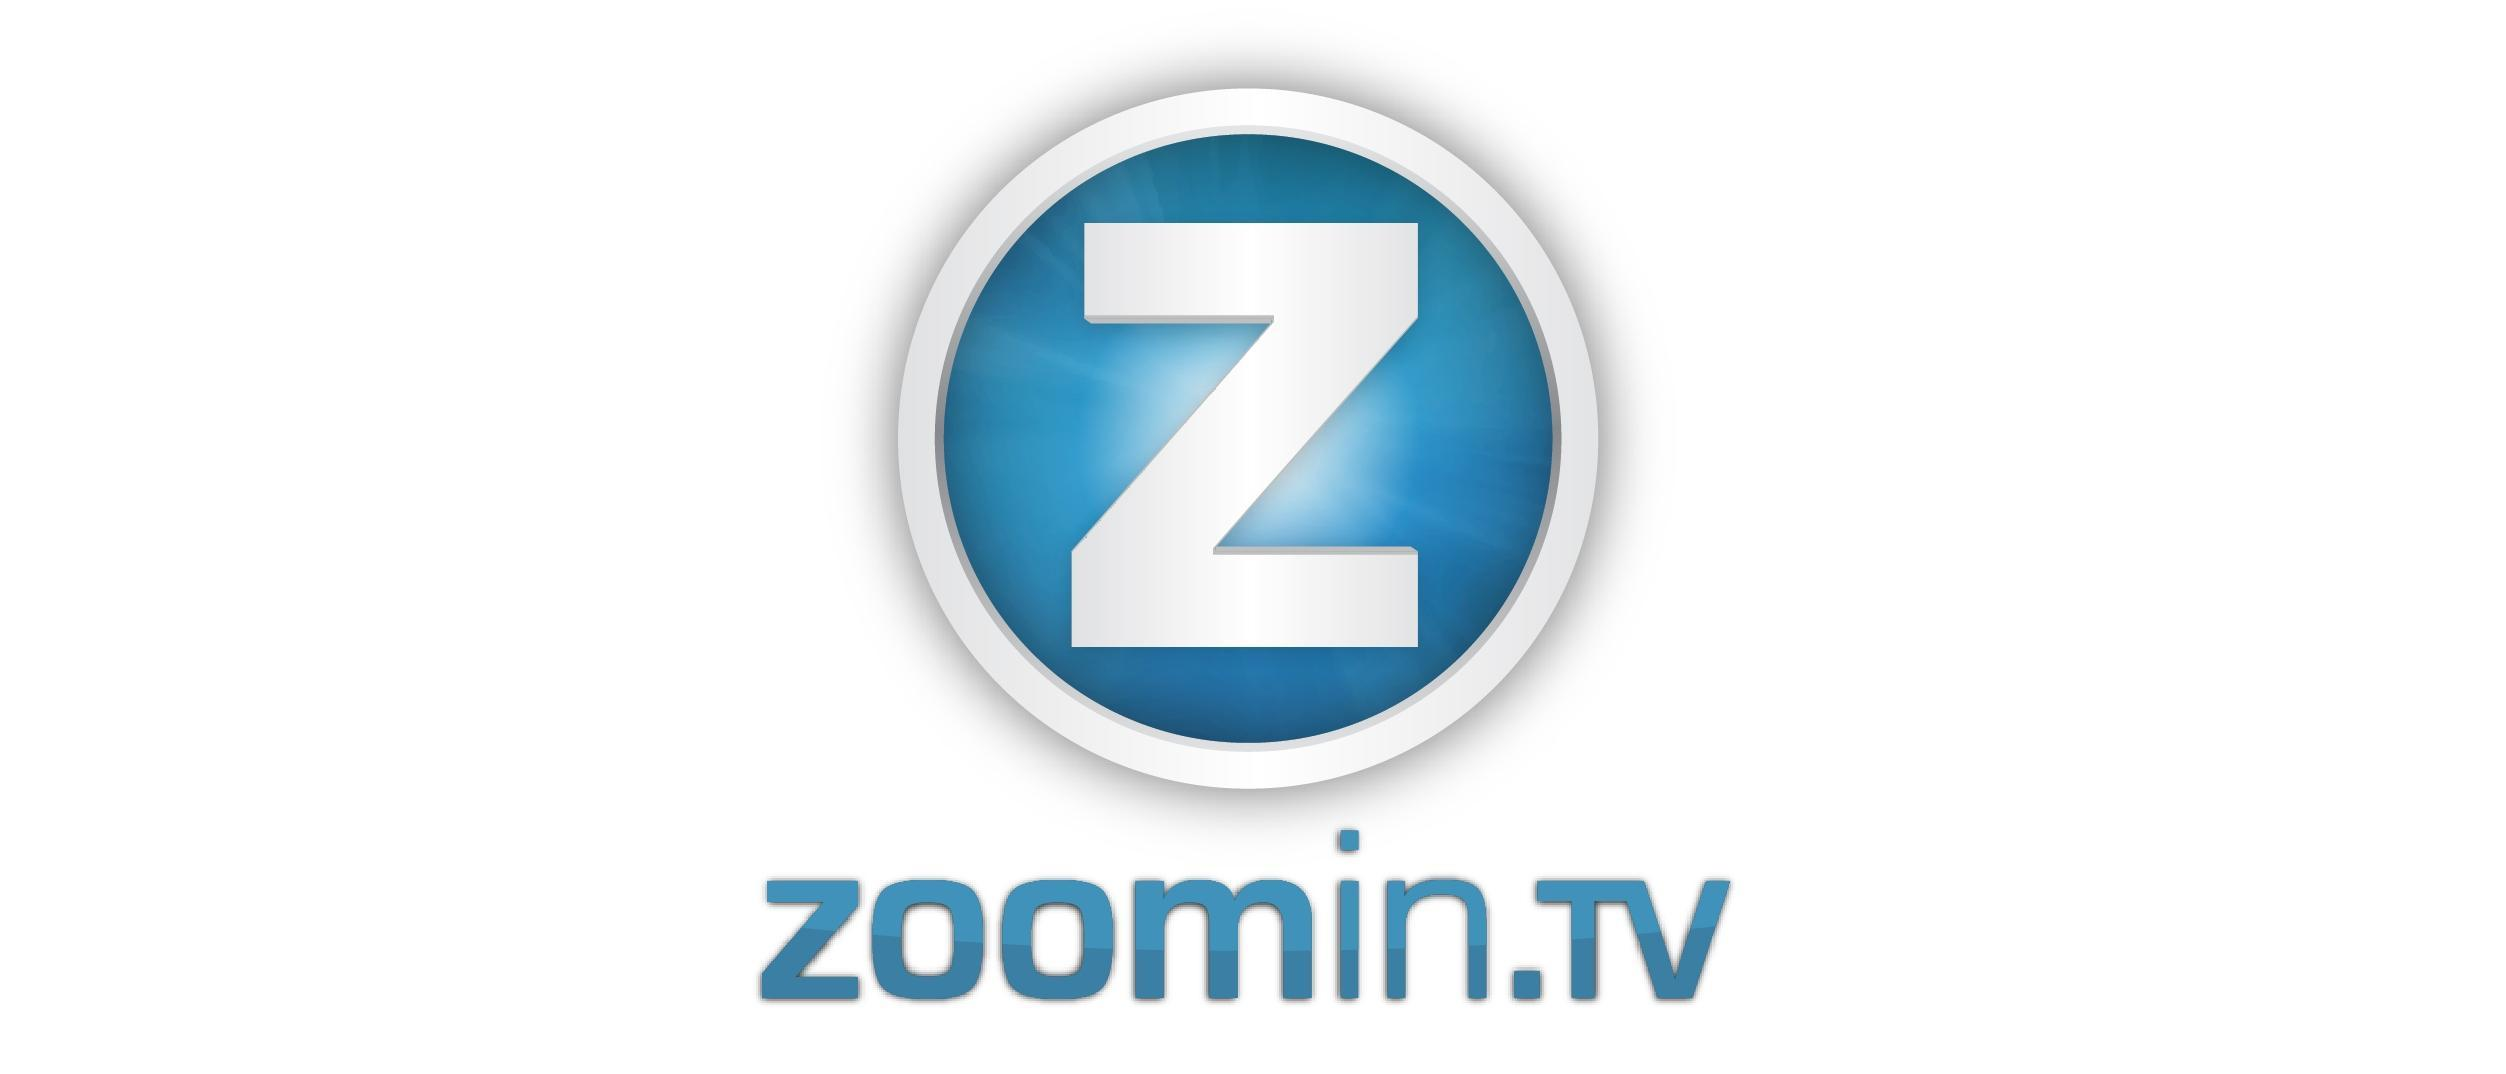 Zoomin.TV Becomes Largest European YouTube Network | Business Wire